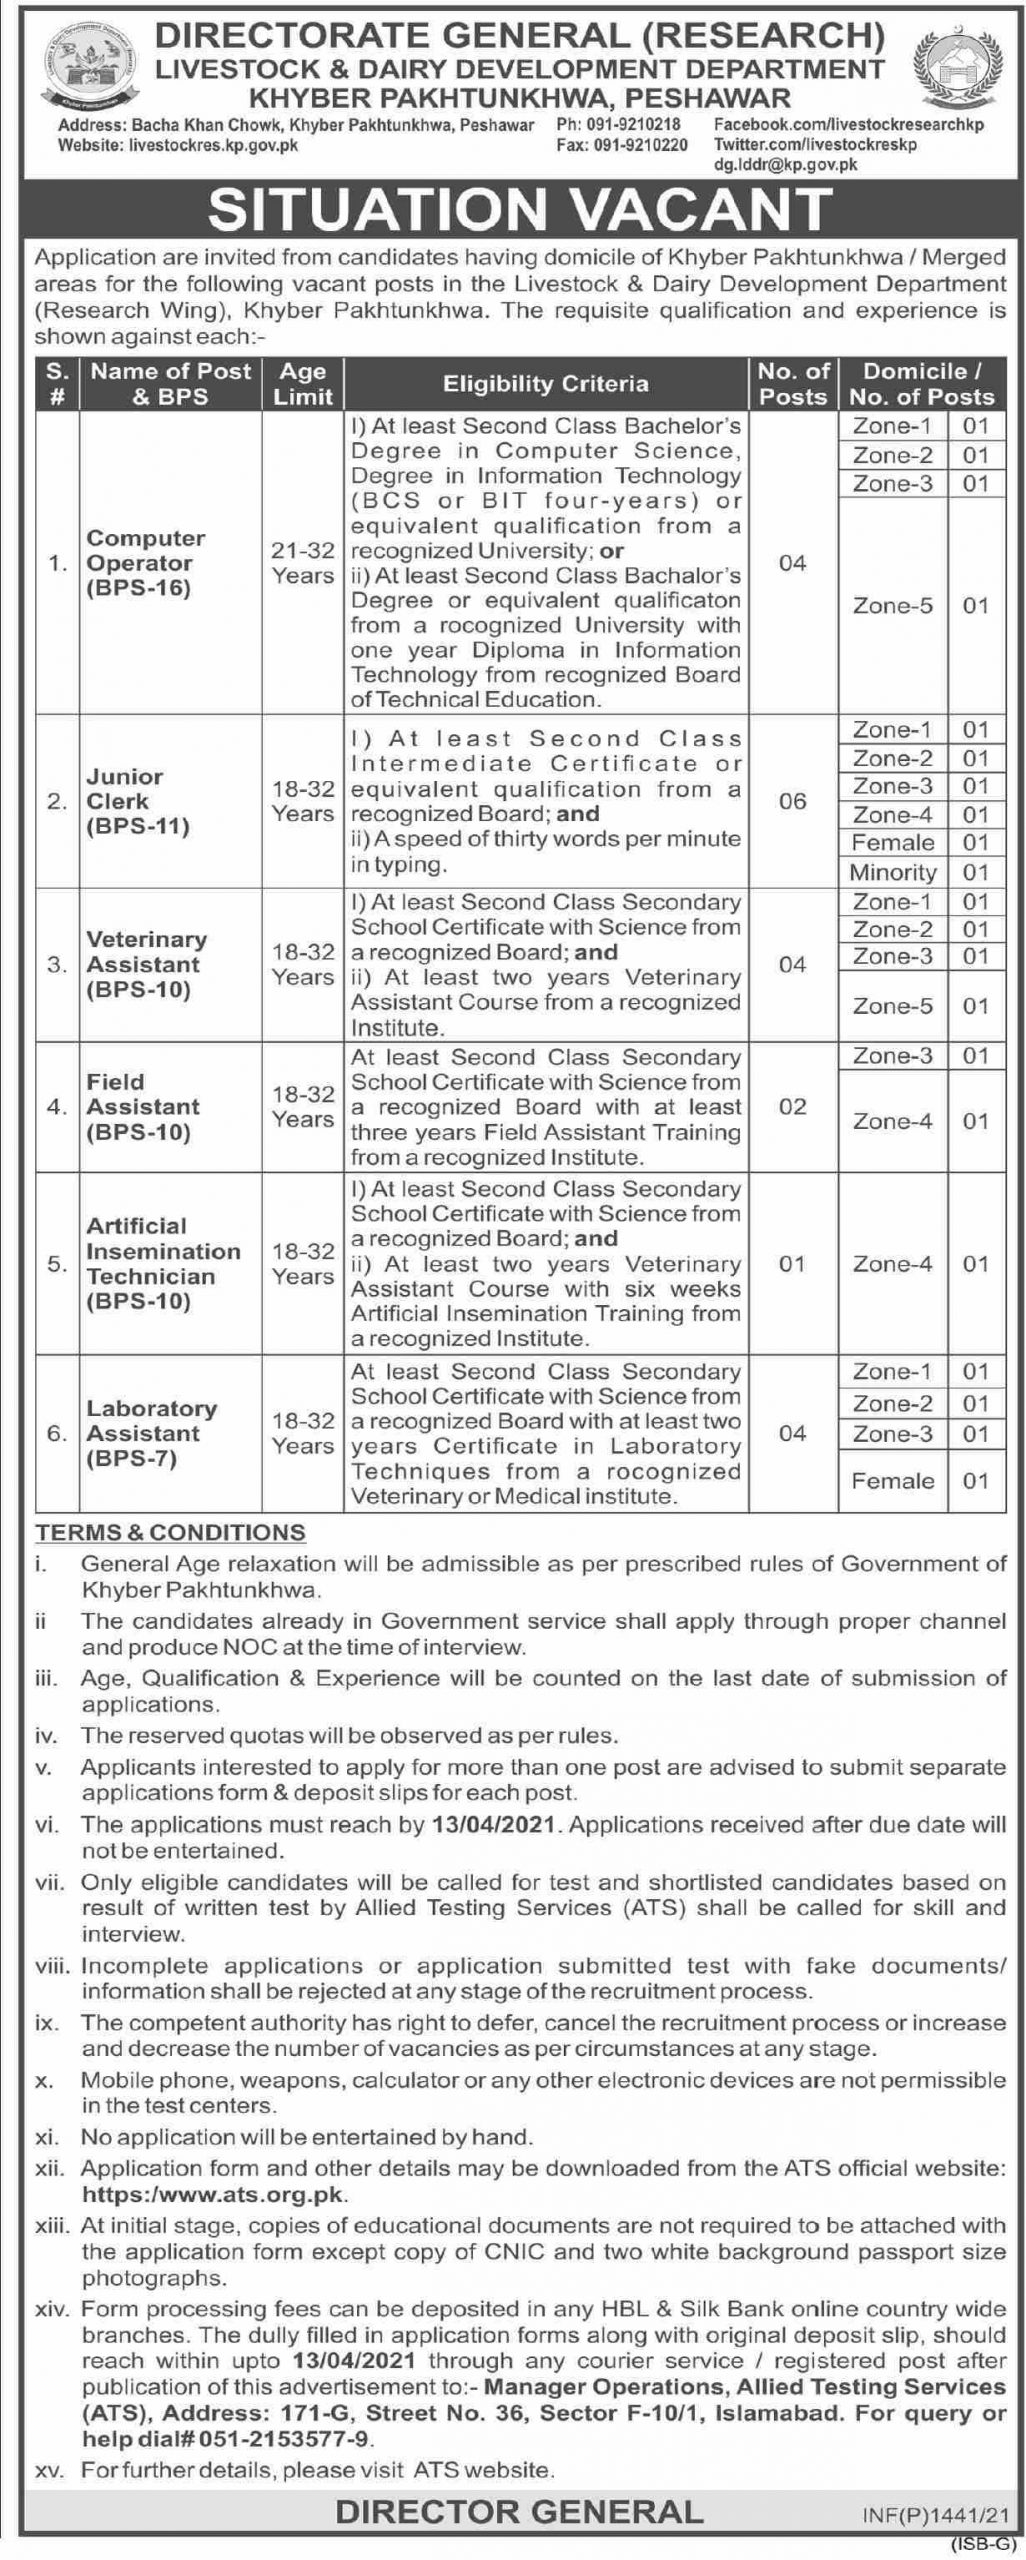 Computer Operator Artificial Insemination Technician Laboratory Assistant Junior Clerk Veterinary Assistant Field Assistant